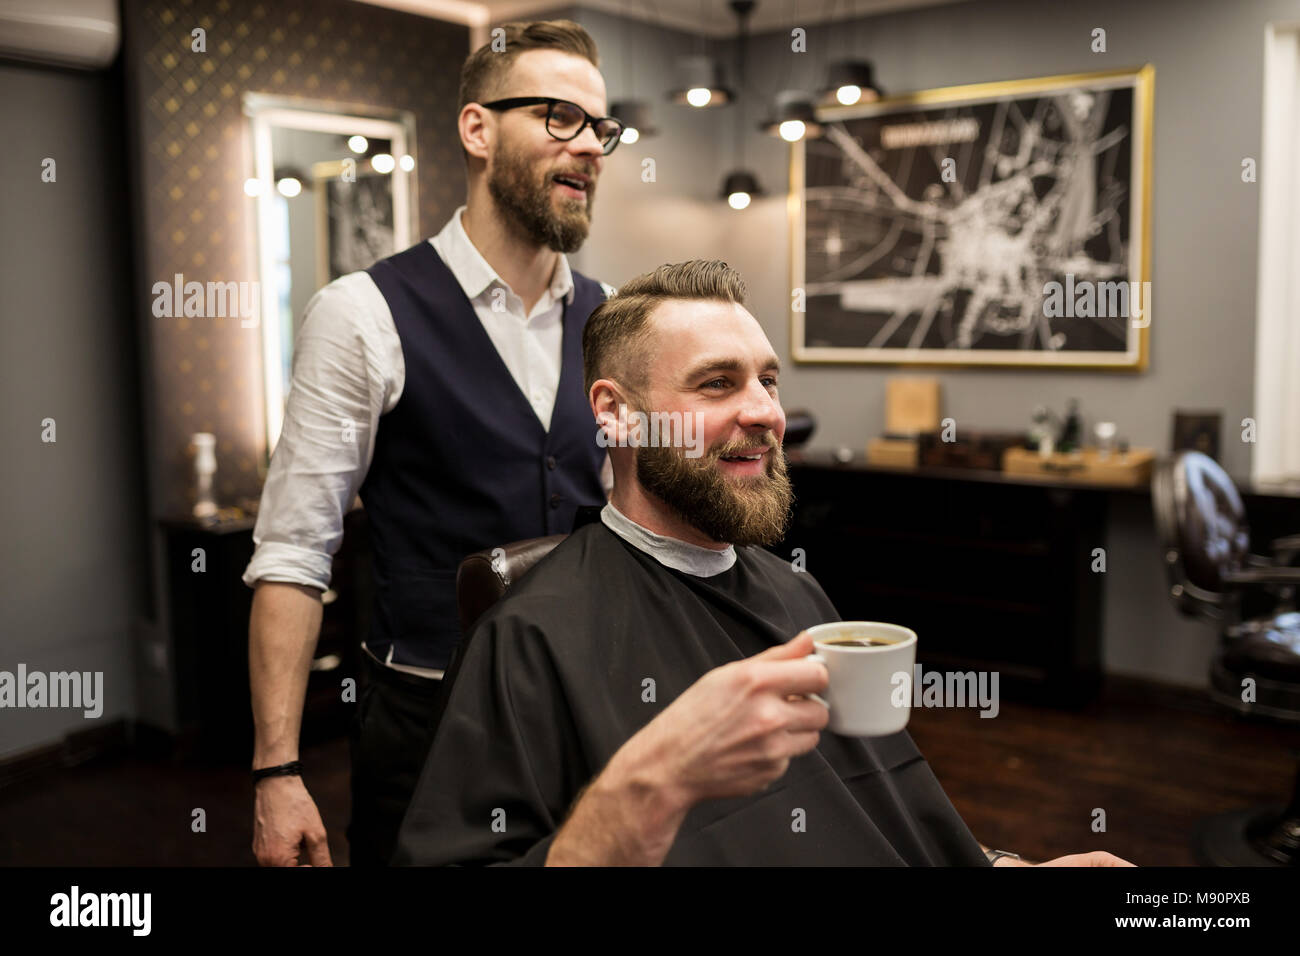 Portrait of happy barber and customer drinking coffee in salon - Stock Image